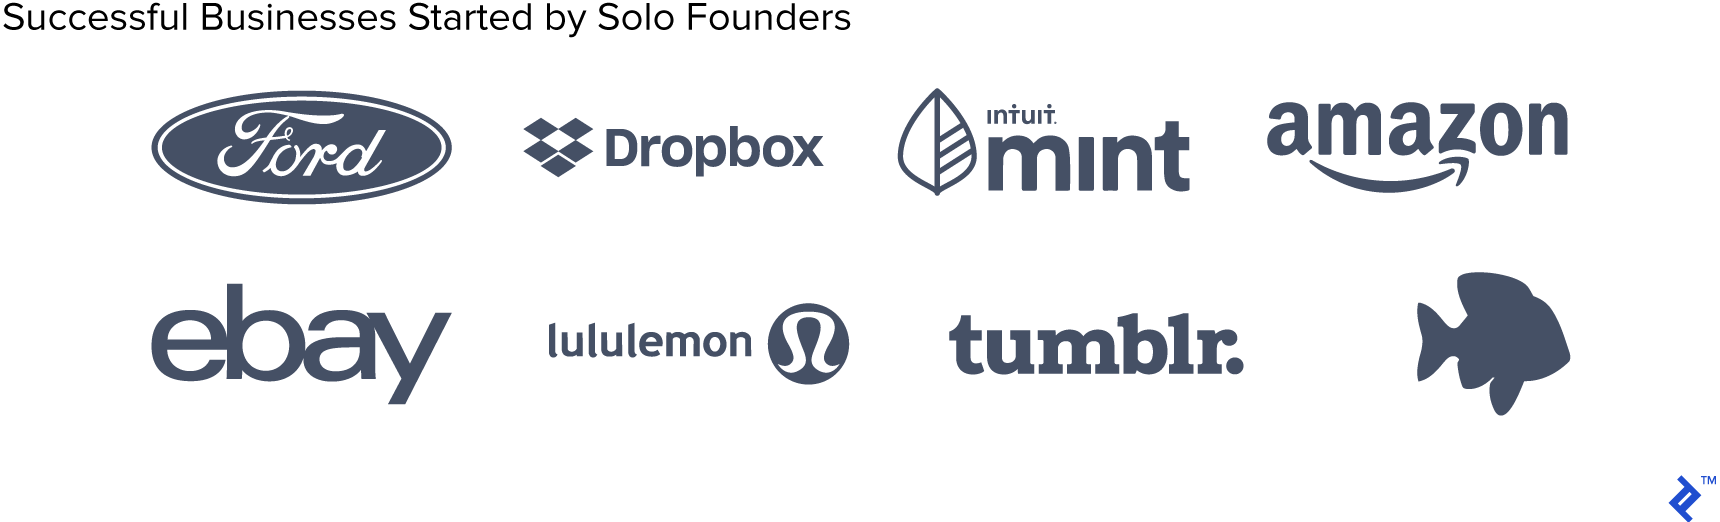 succeful solo founders